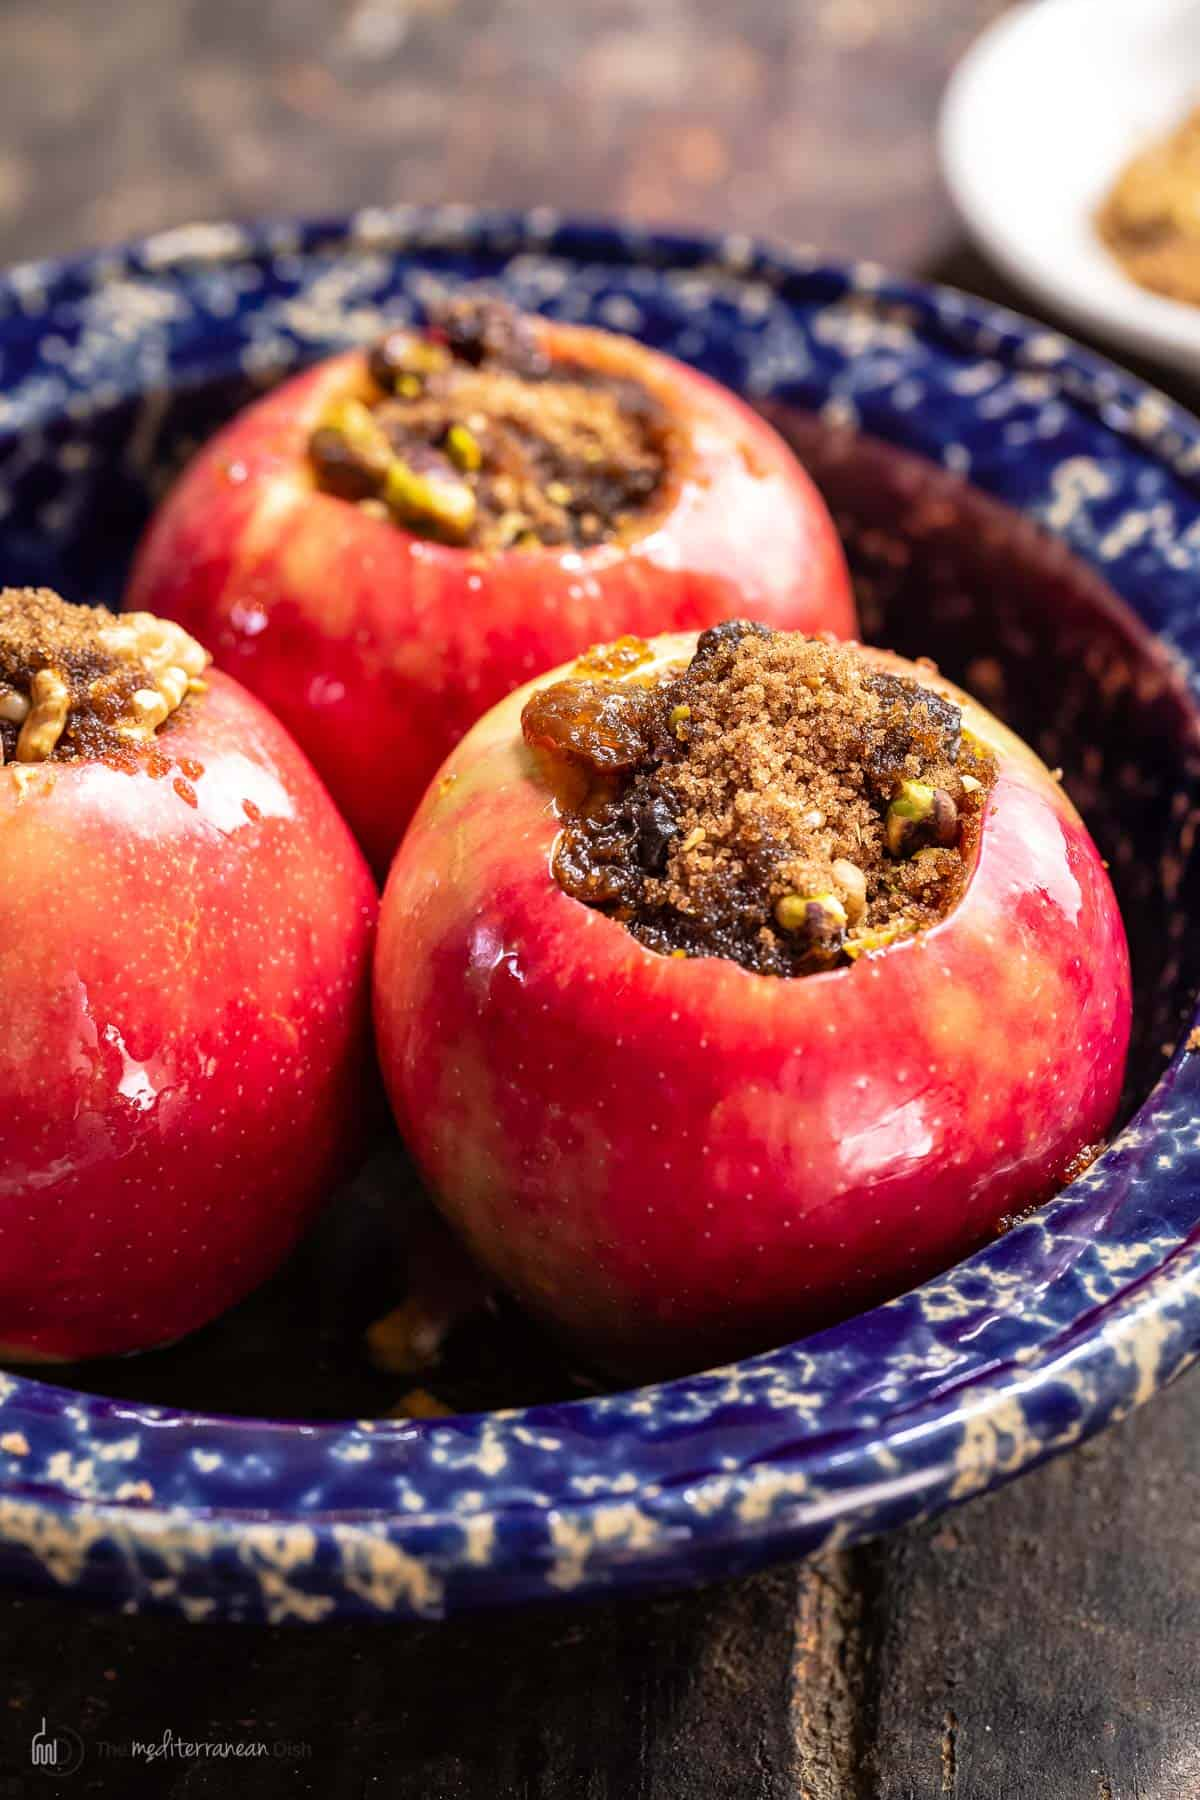 Side look at stuffed apples with cinnamon, brown sugar and nuts